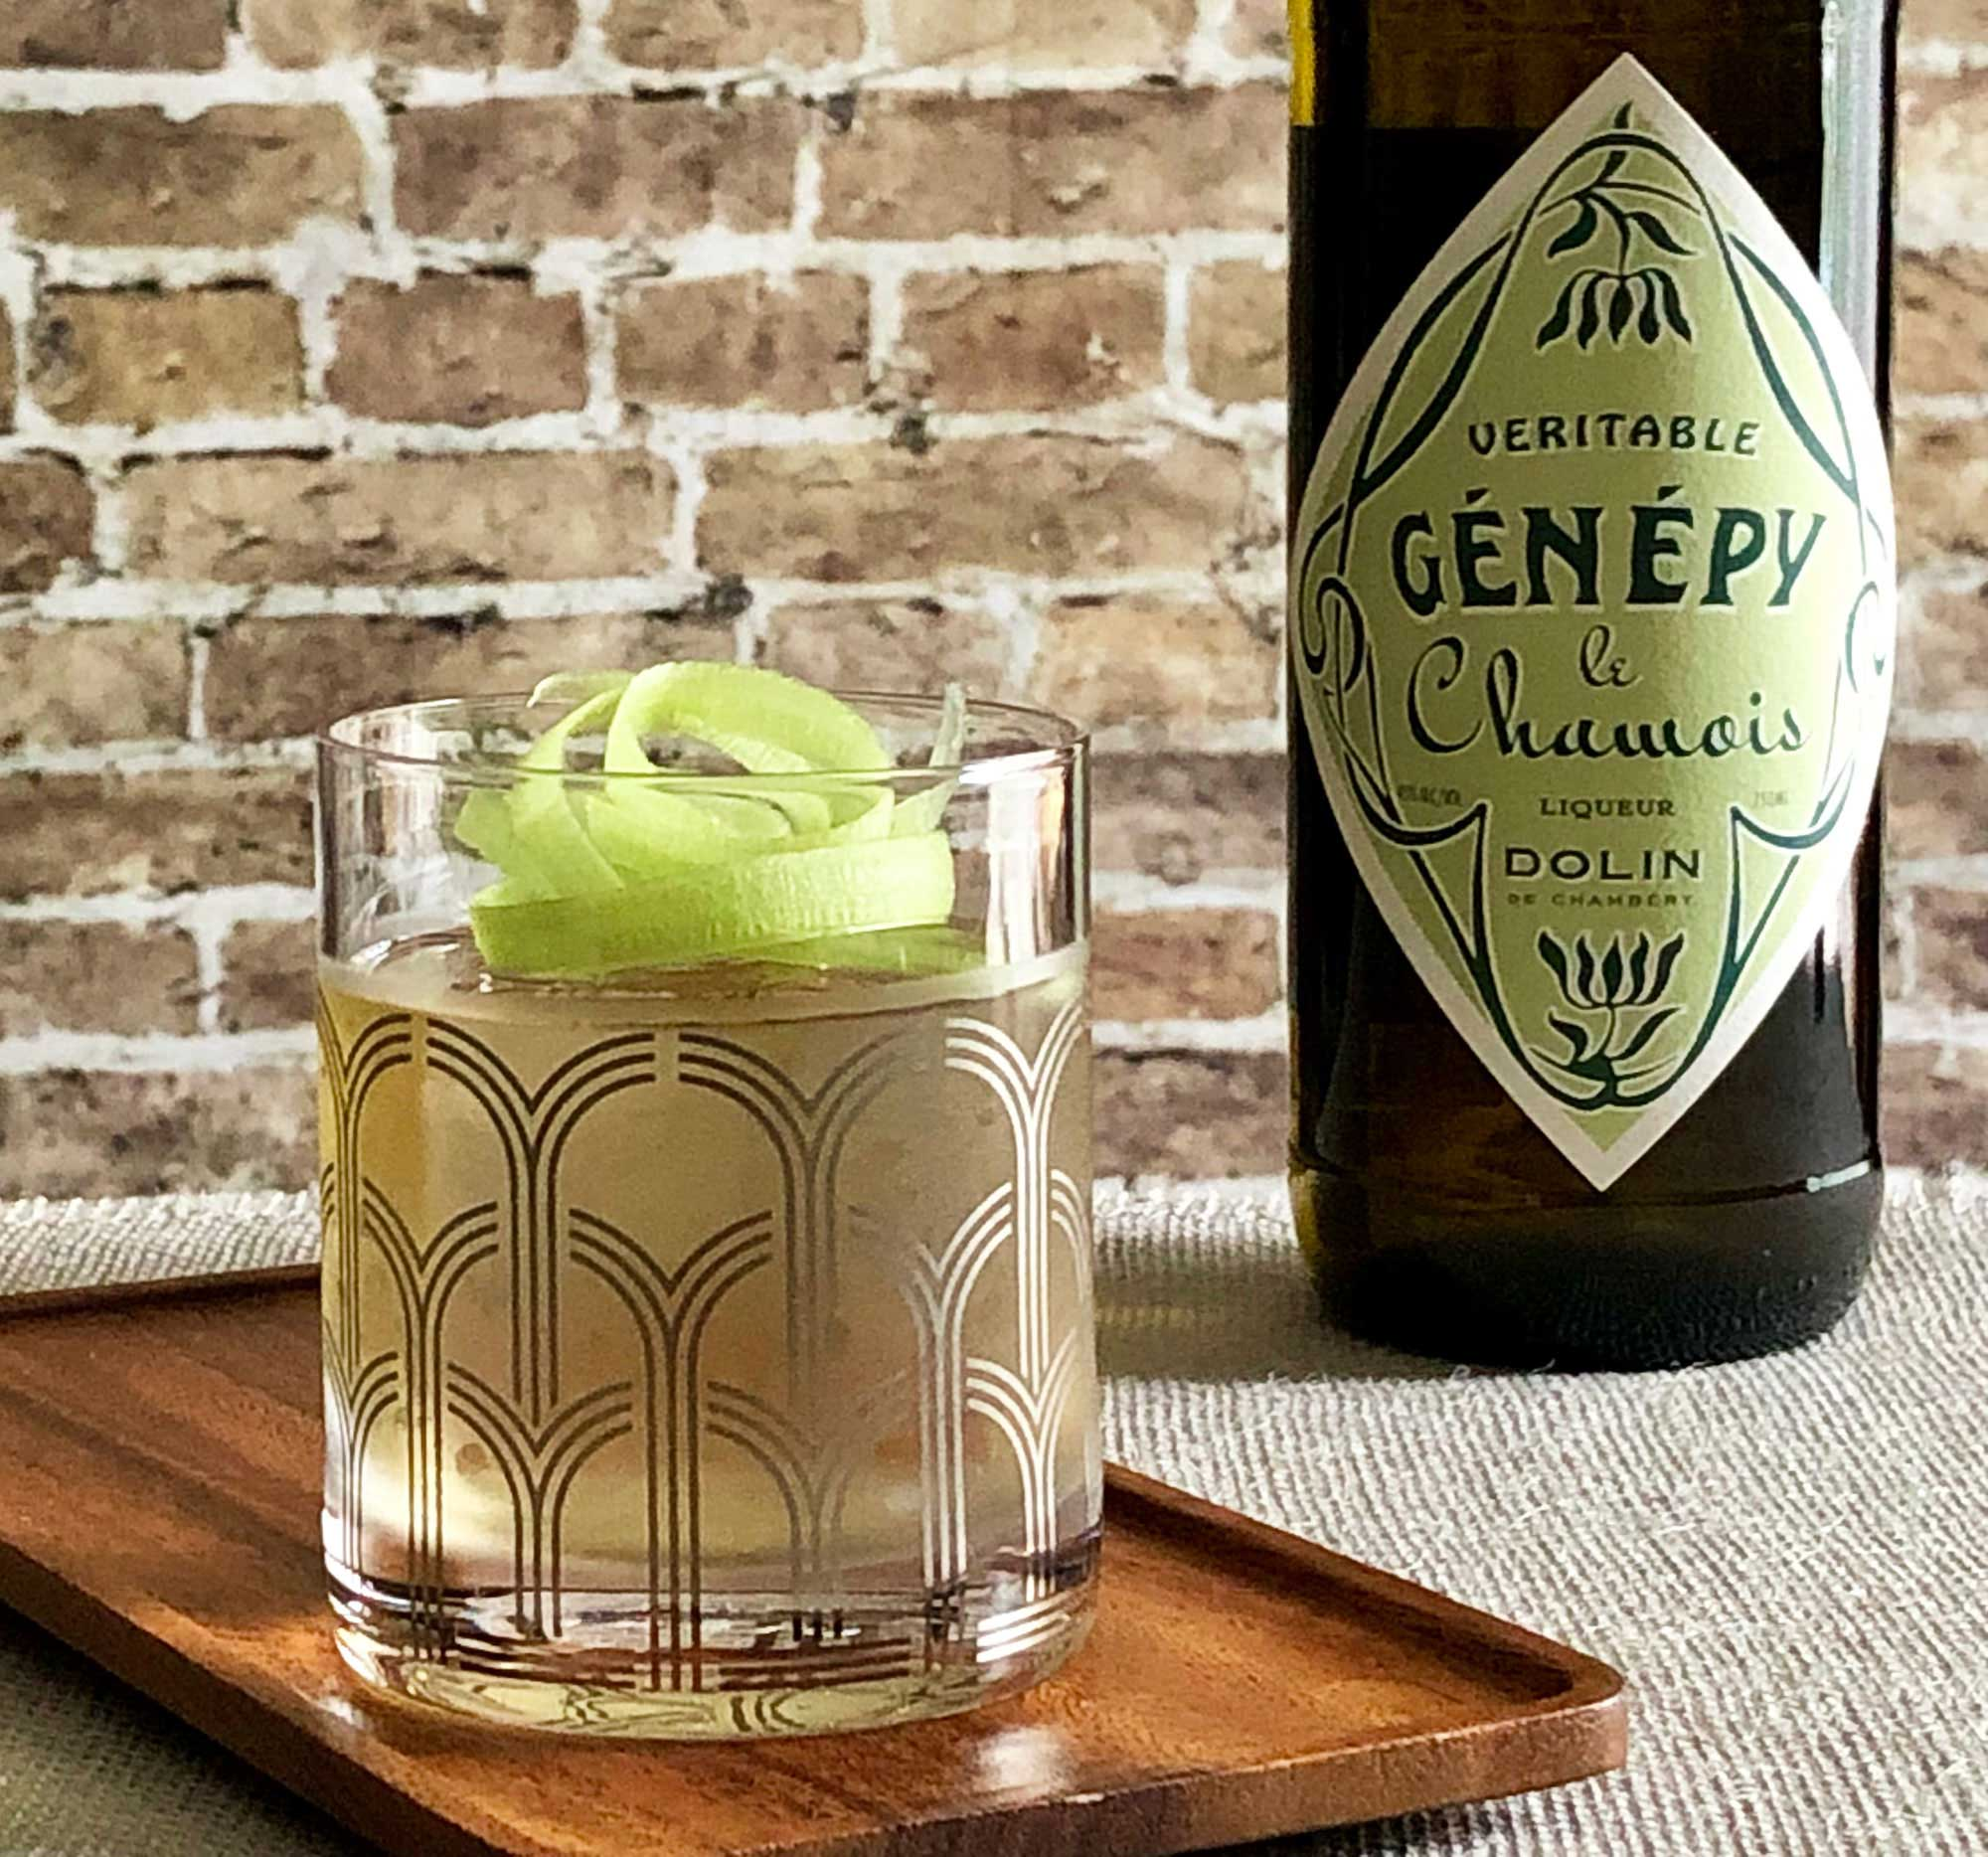 An example of the Gaelic Gardener, the mixed drink (cocktail), by Alex Gregg, Moving Sidewalk, Houston, featuring irish whiskey, Dolin Blanc Vermouth de Chambéry, Dolin Génépy le Chamois Liqueur, and celery bitters; photo by Lee Edwards